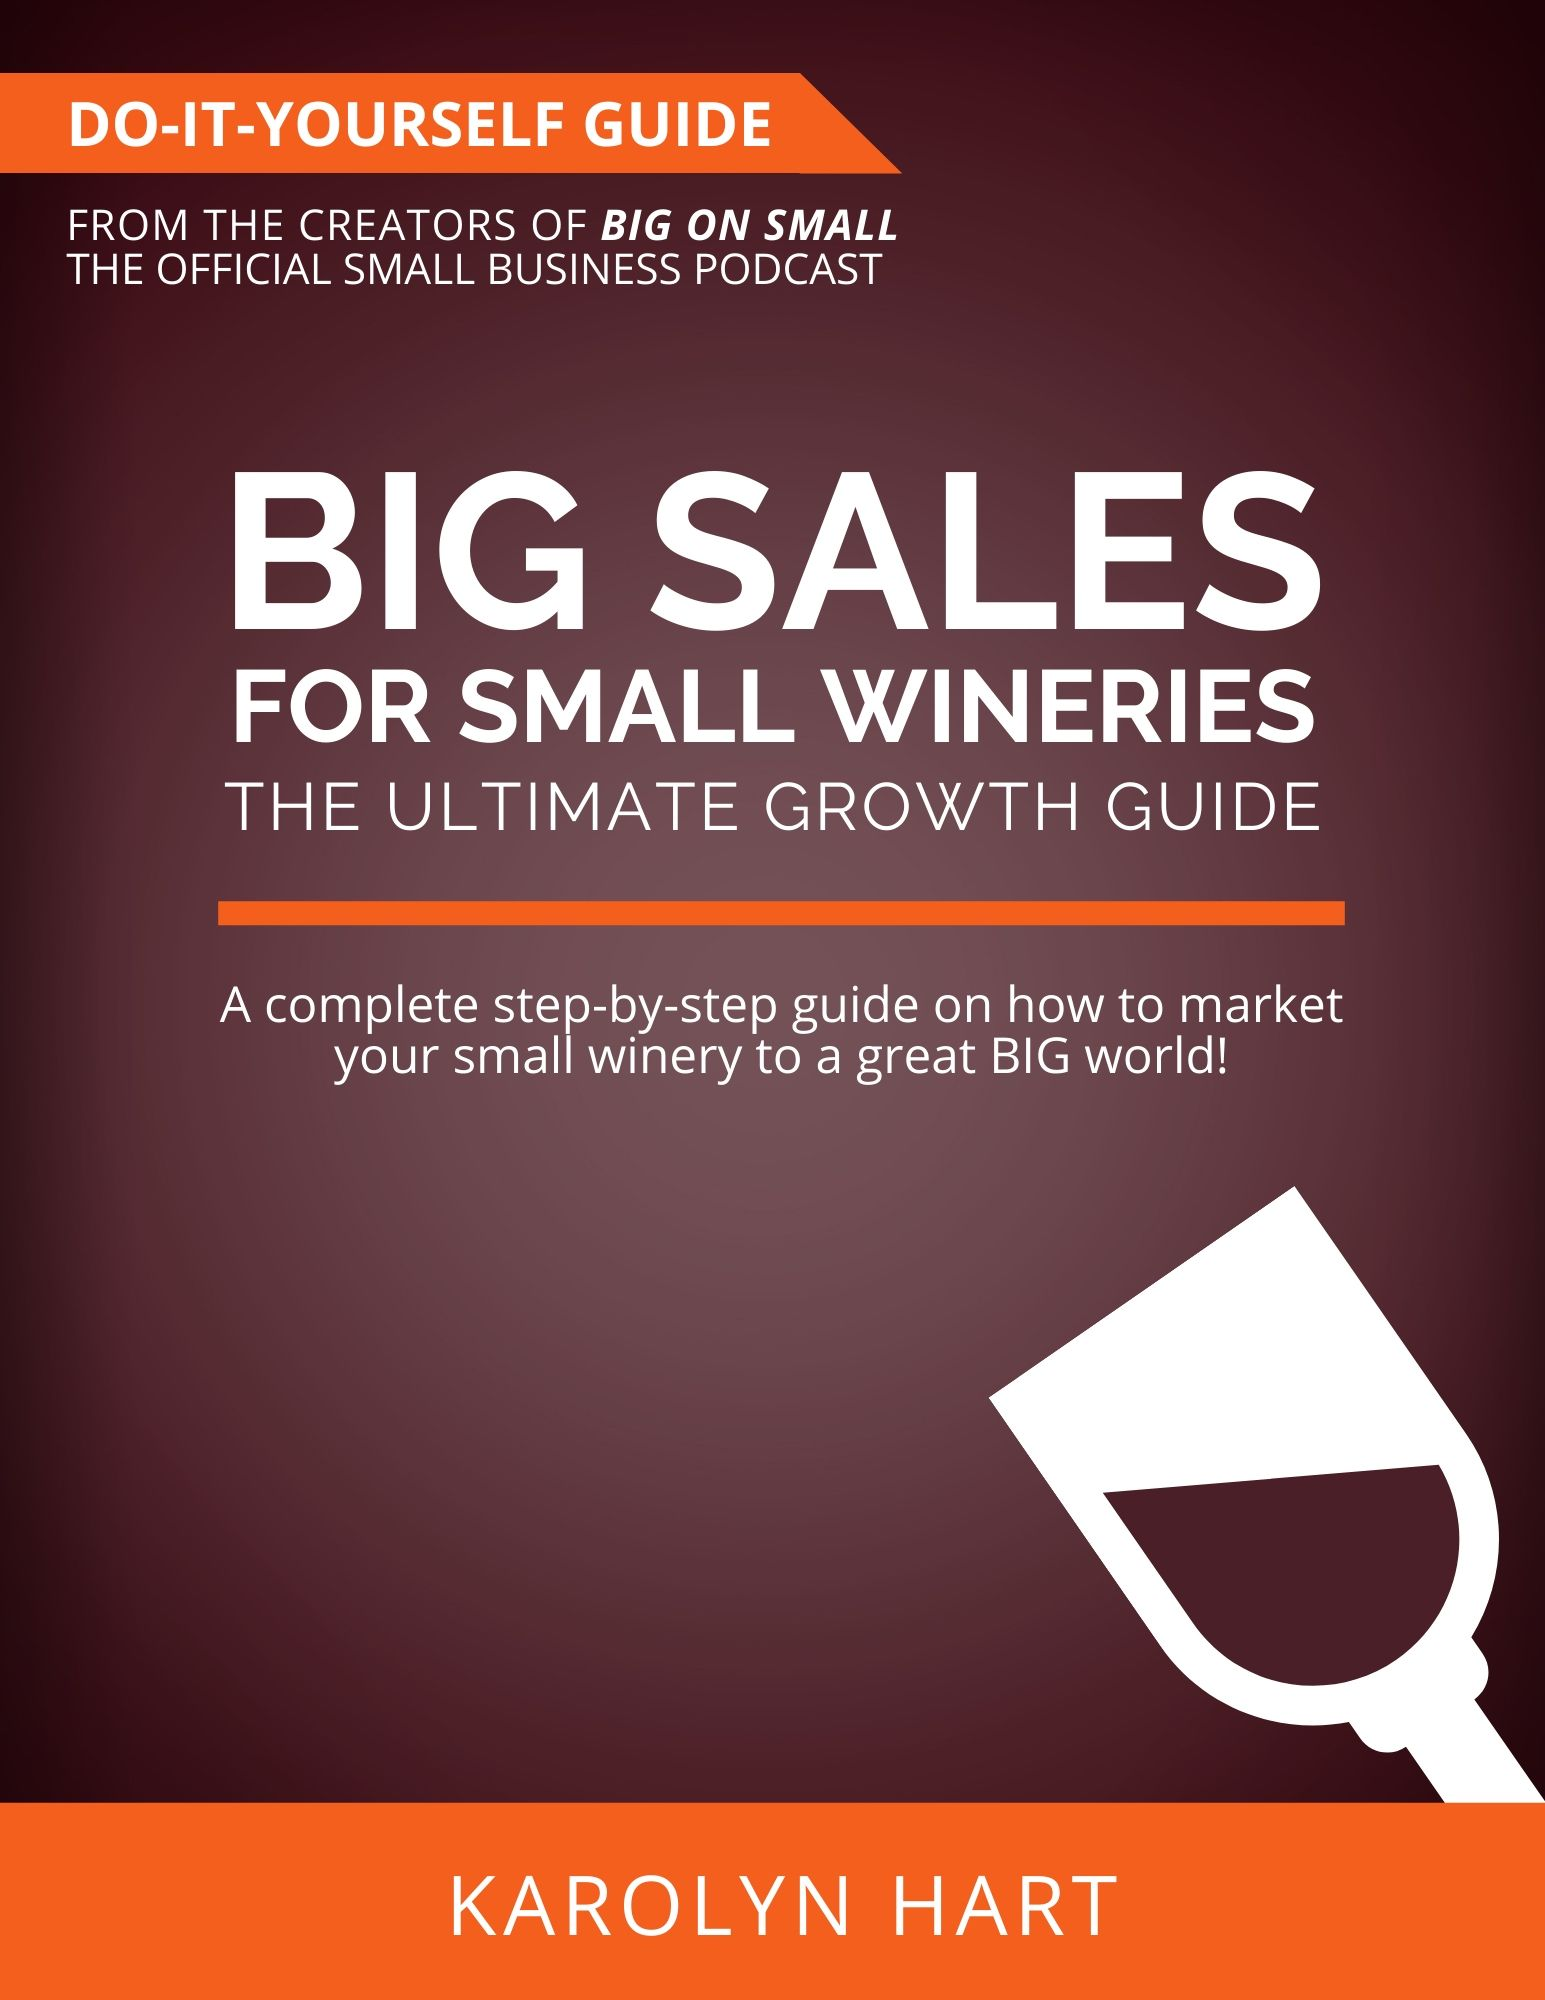 Big Sales for Small Wineries: The Ultimate Do-It-Yourself Growth Guide